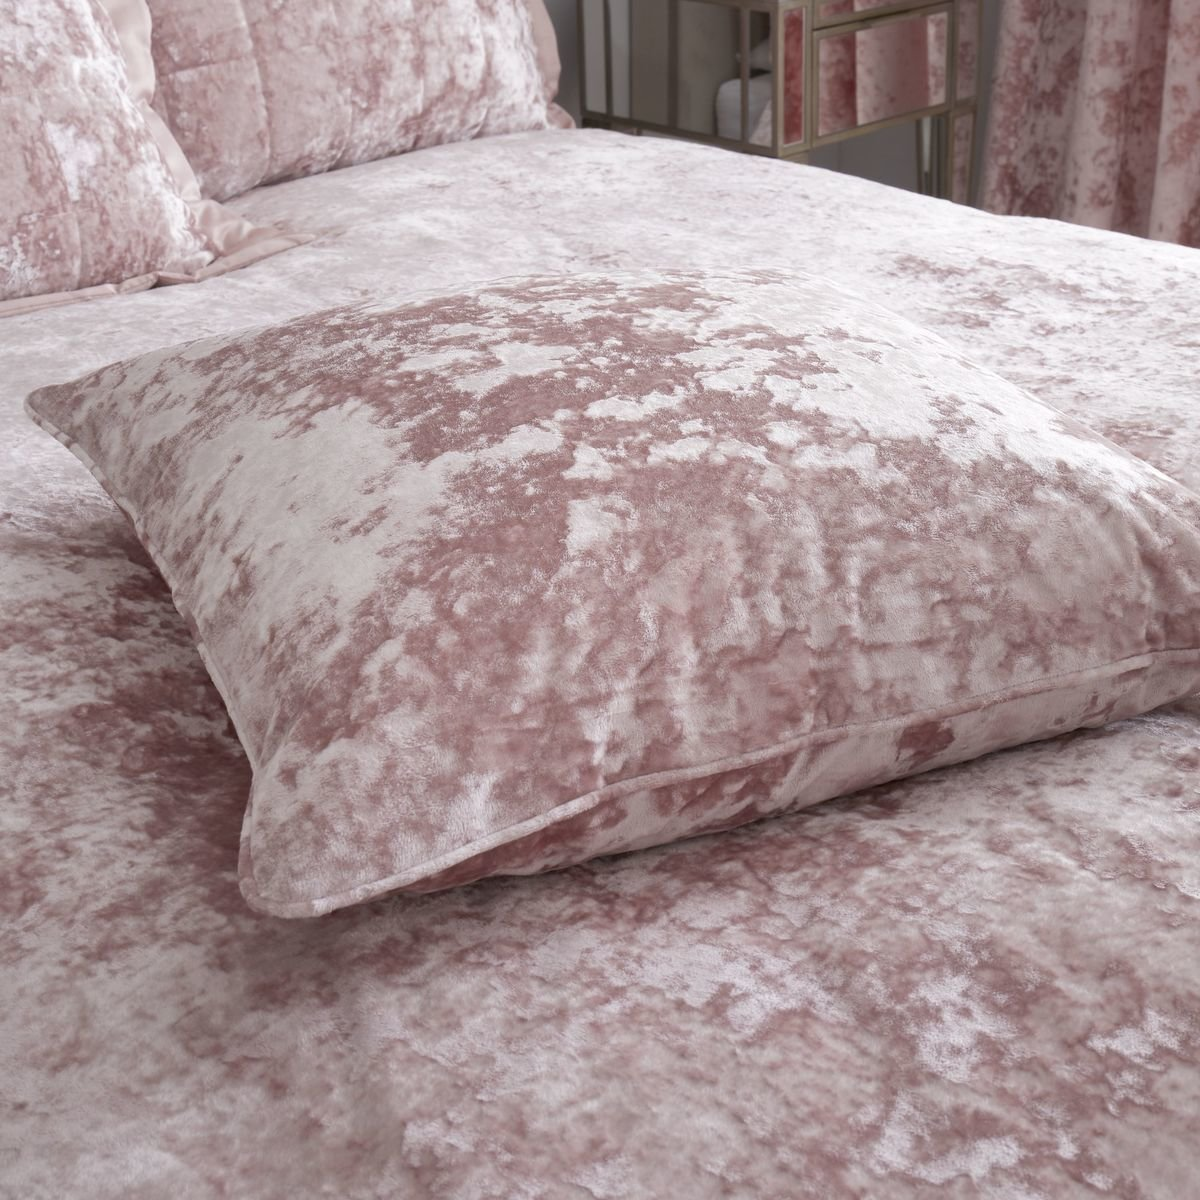 Buy Catherine Lansfield Crushed Velvet Duvet Cover Set Bedding Curtains Range Online Norwood Textiles